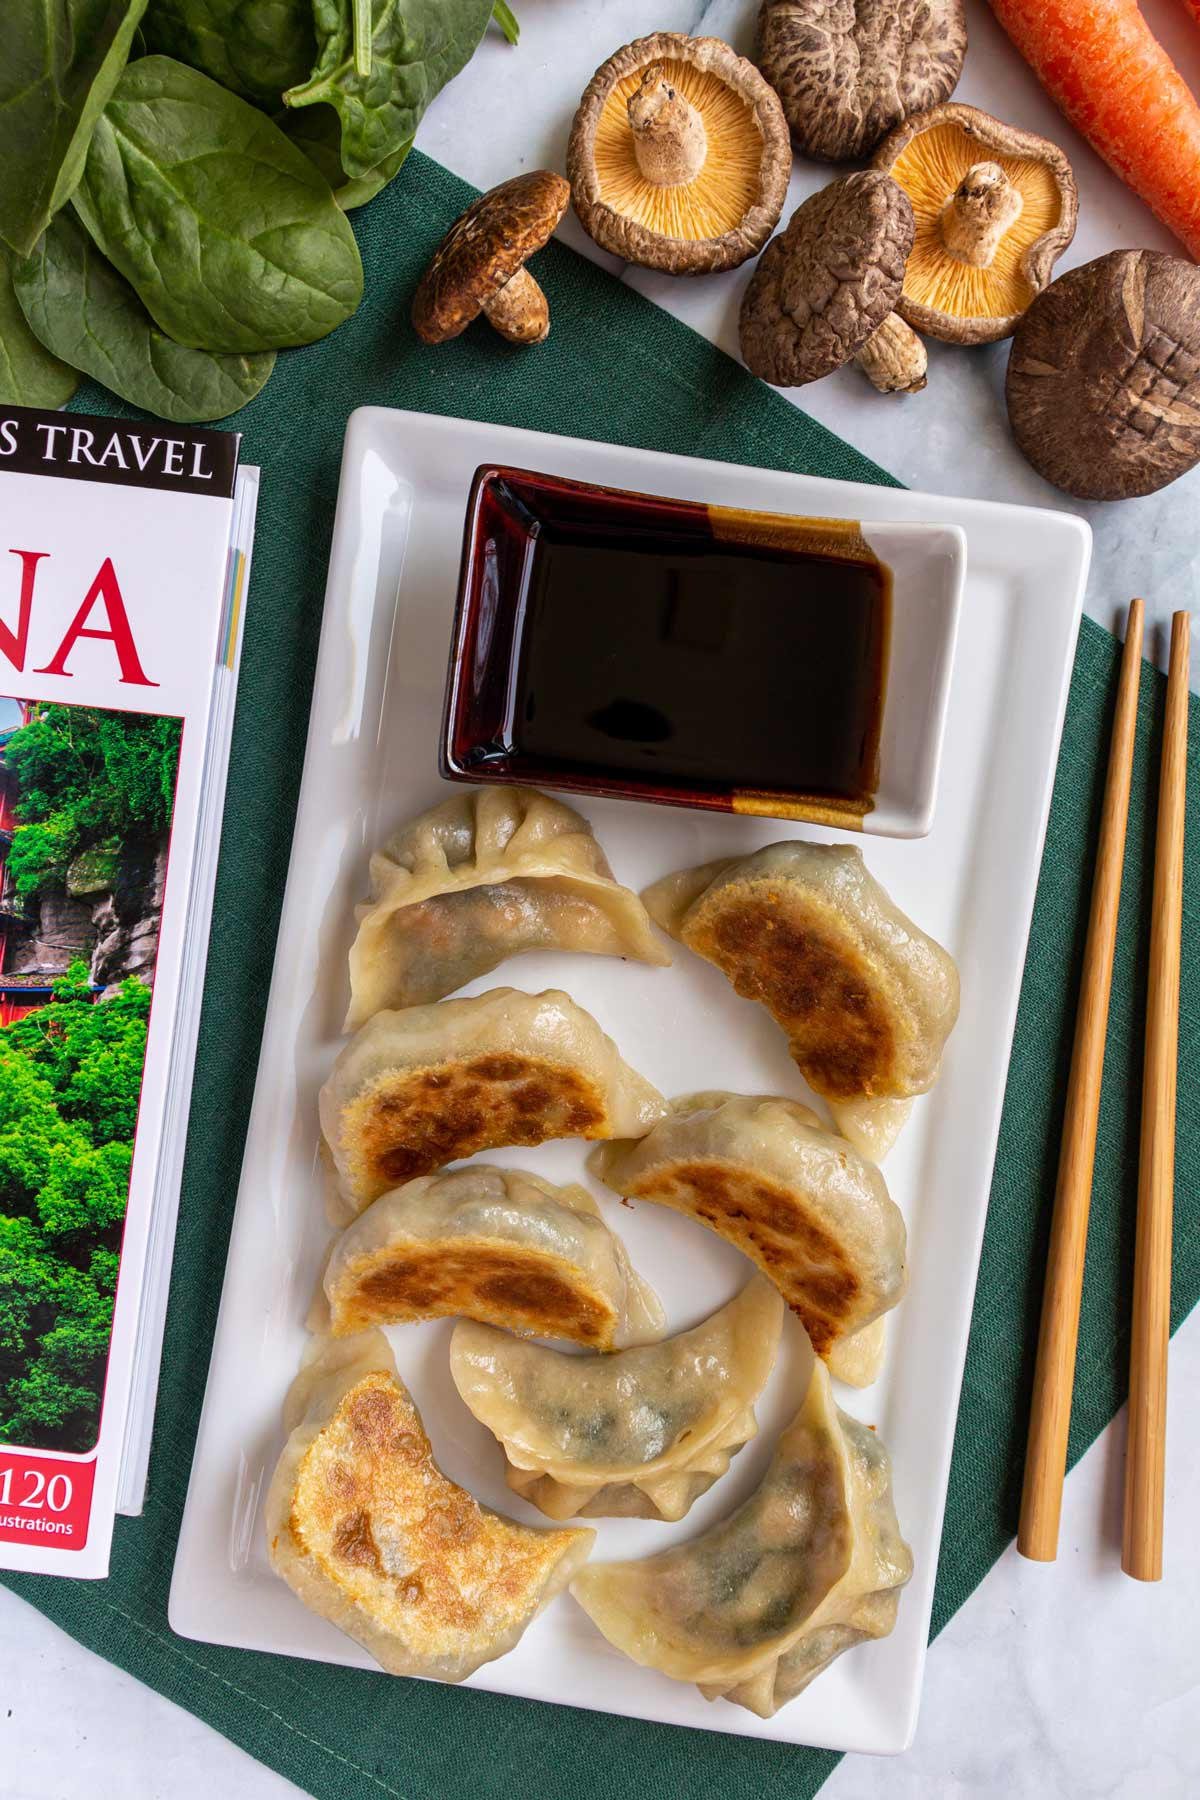 A plate of potstickers, a China travel book, chopsticks, mushrooms, and spinach on a green napkin.